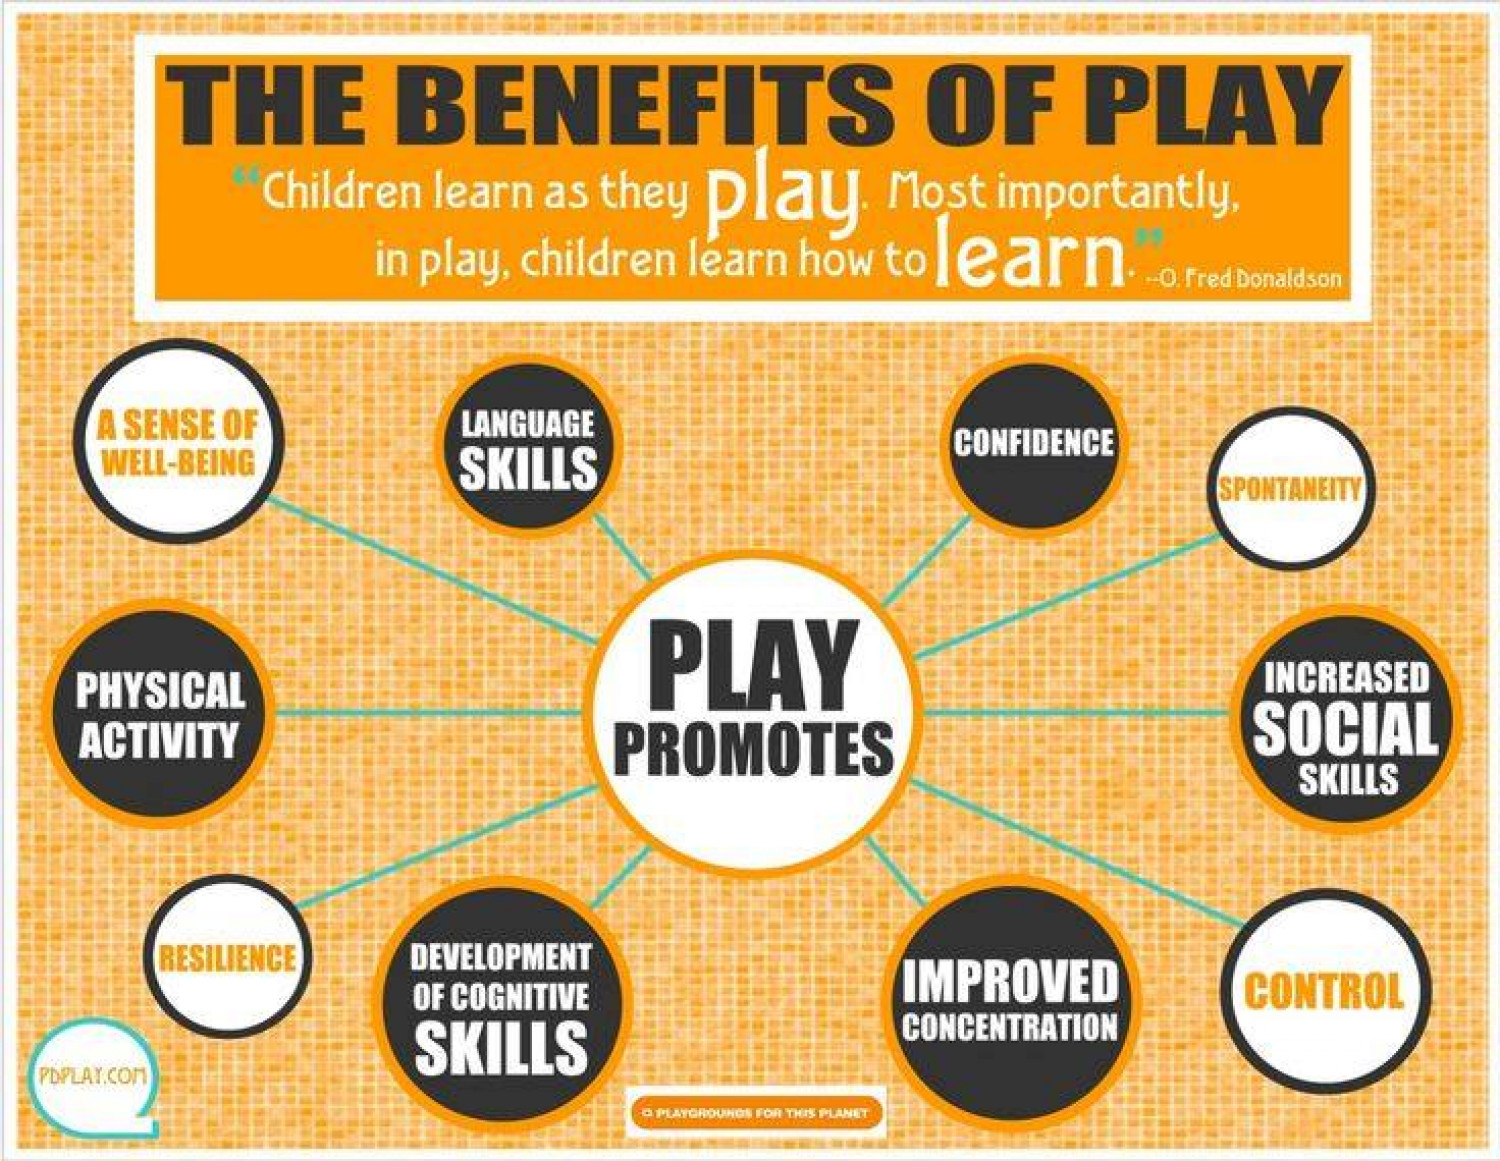 The Benefits of Play Infographic